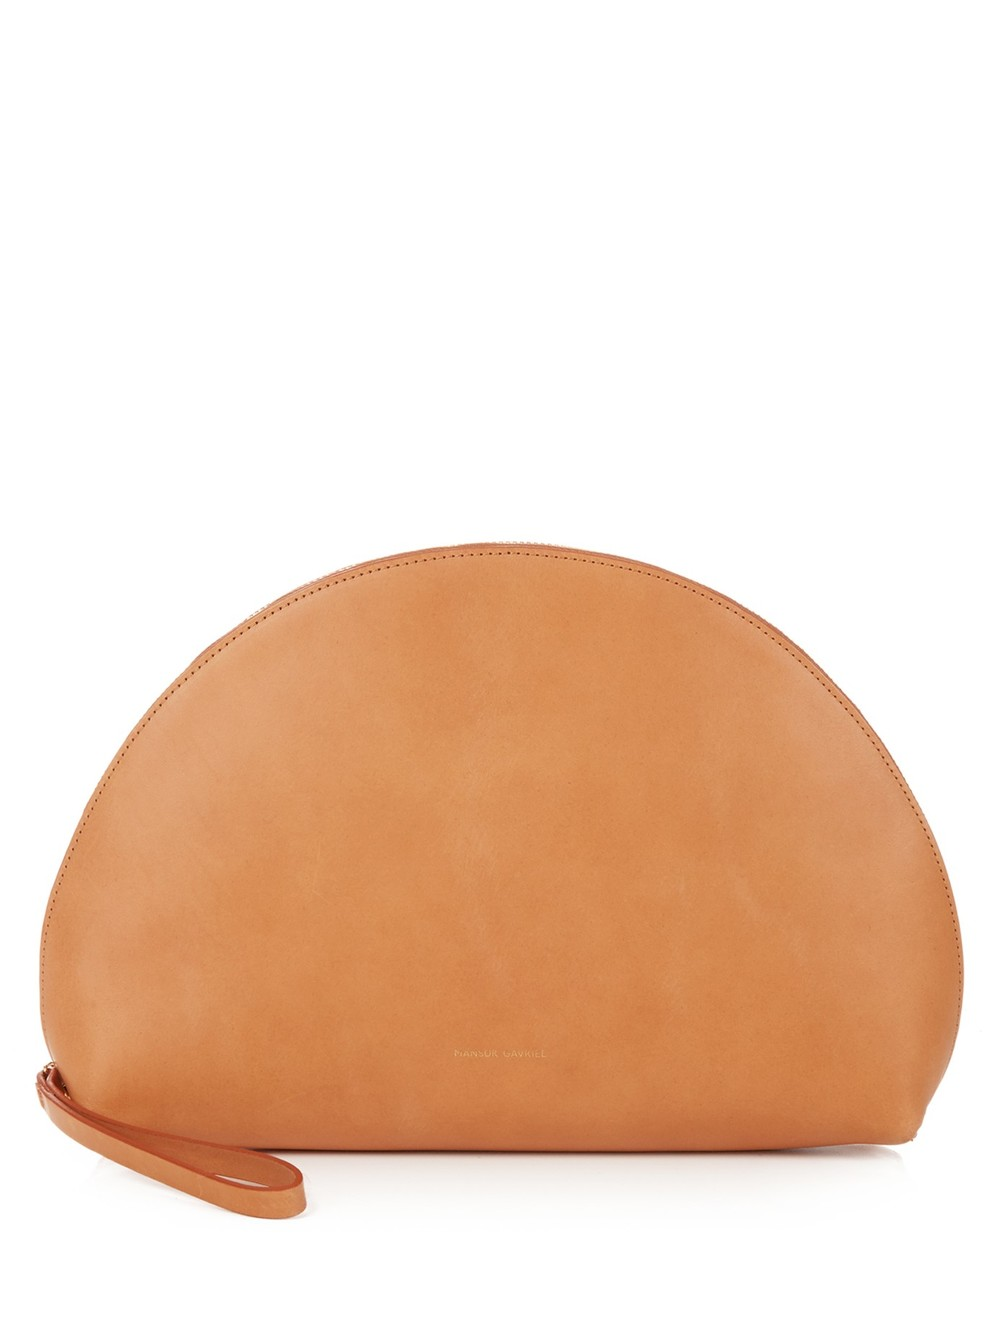 Mansur Gavriel 'Moon Leather Clutch'